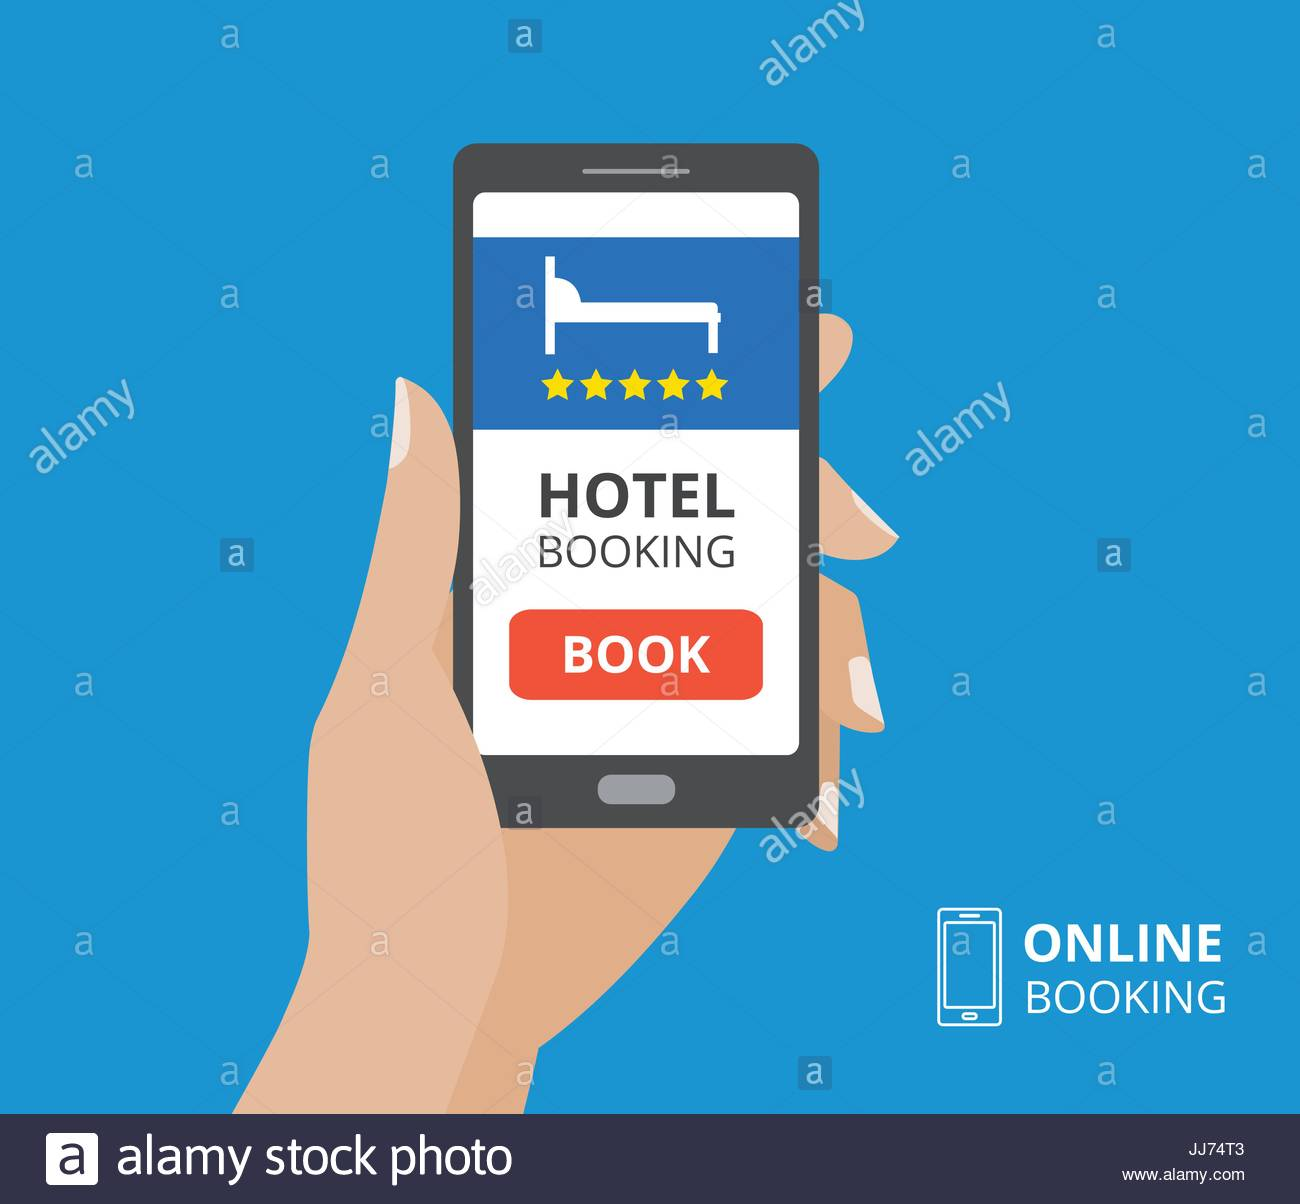 Design concept of hotel booking online. Hand holding smartphone with book button and bed icon on screen